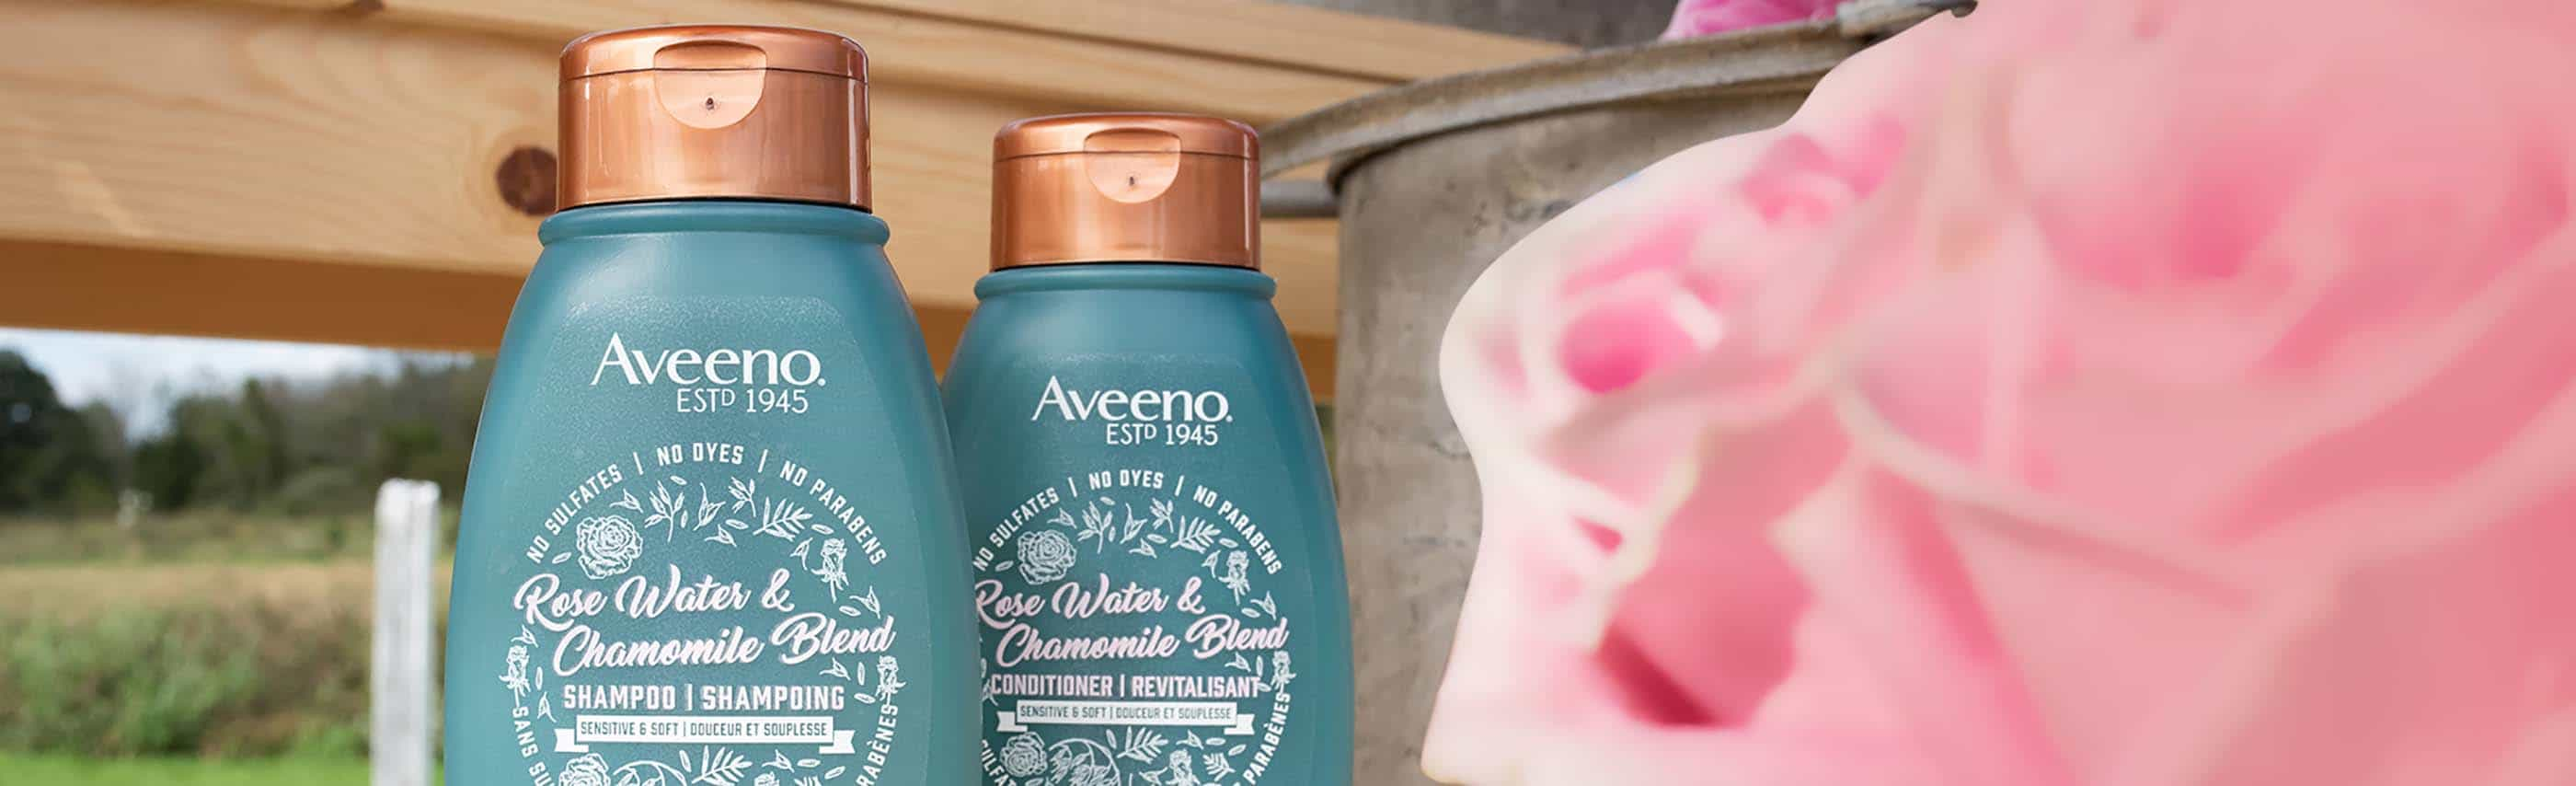 two aveeno rose water and chamomile product bottles behind a rose